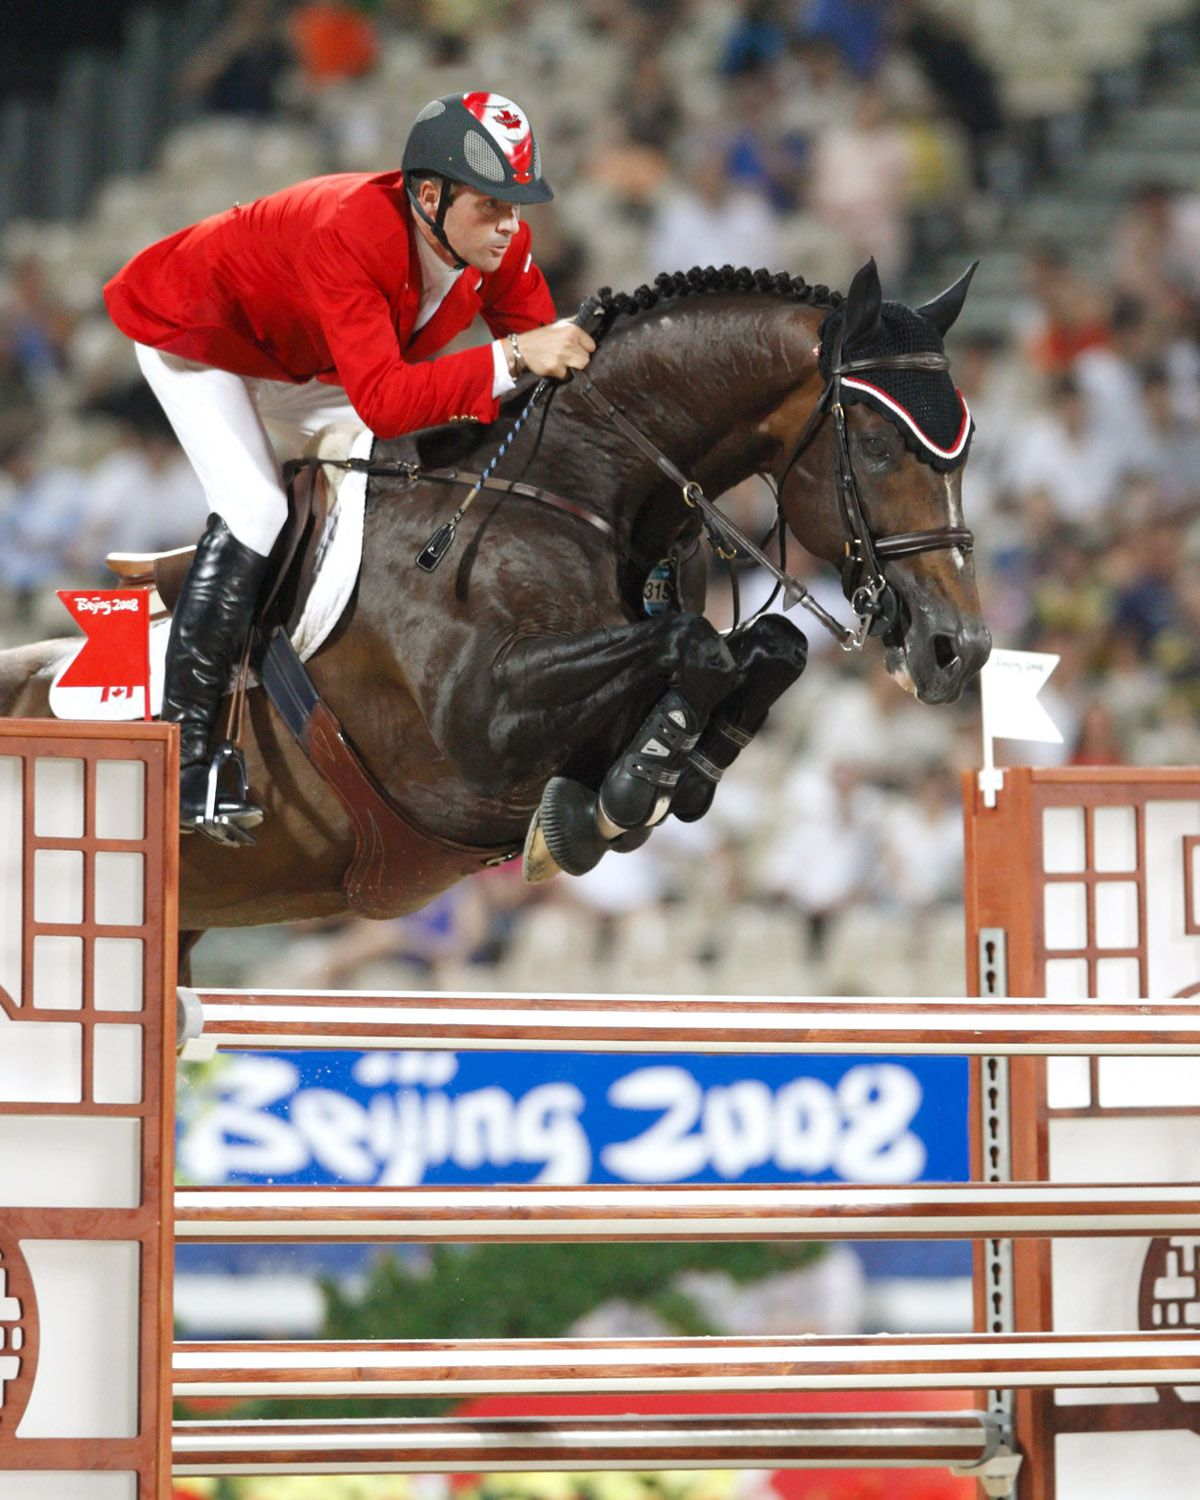 eric lamaze and hickstead. the most careful spring-loaded horse you've ever seen. olympic champion.